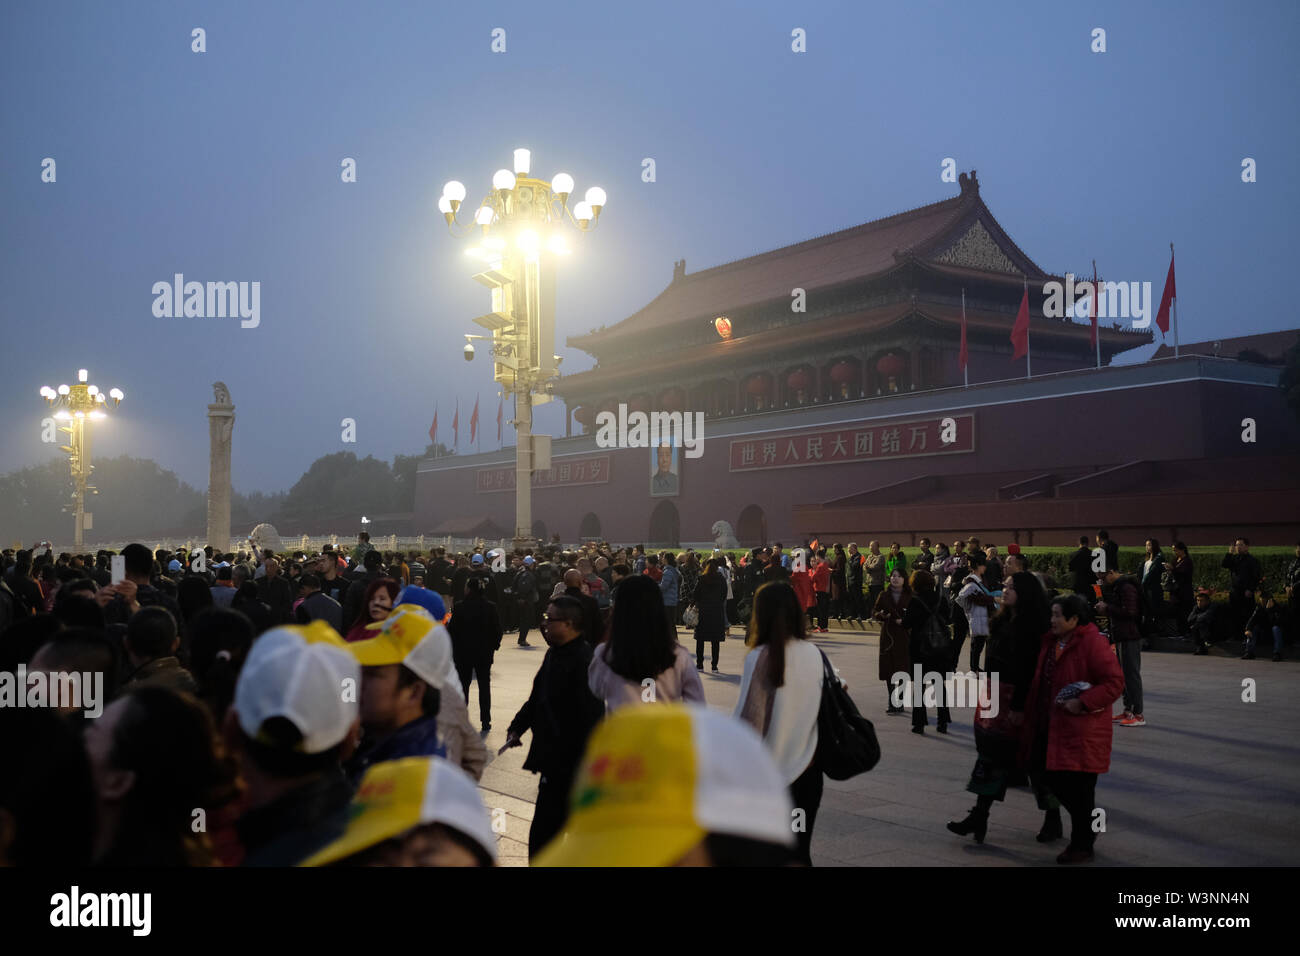 lots of people with cameras and cellphone outside of the forbidden city in beijing at dawn - Stock Image